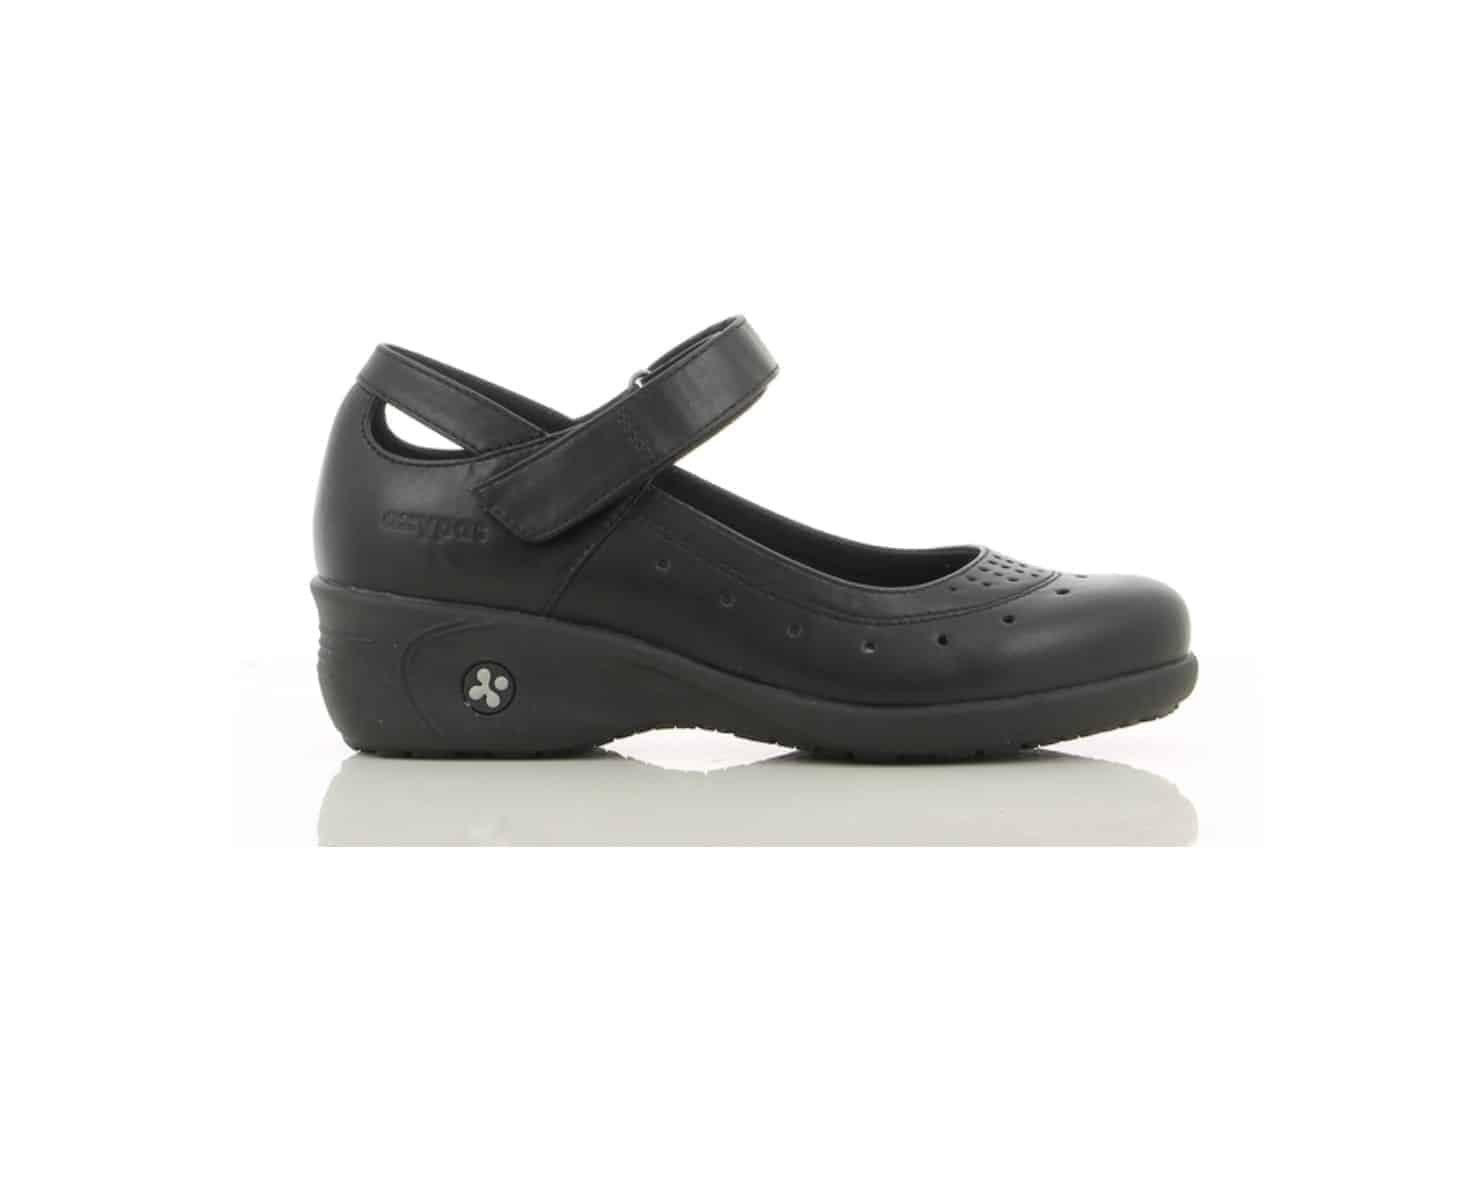 Oxypas 'Olive', Slip-on, Anti-slip, Anti-static, Mary-Jane Style Nursing Shoe in Black